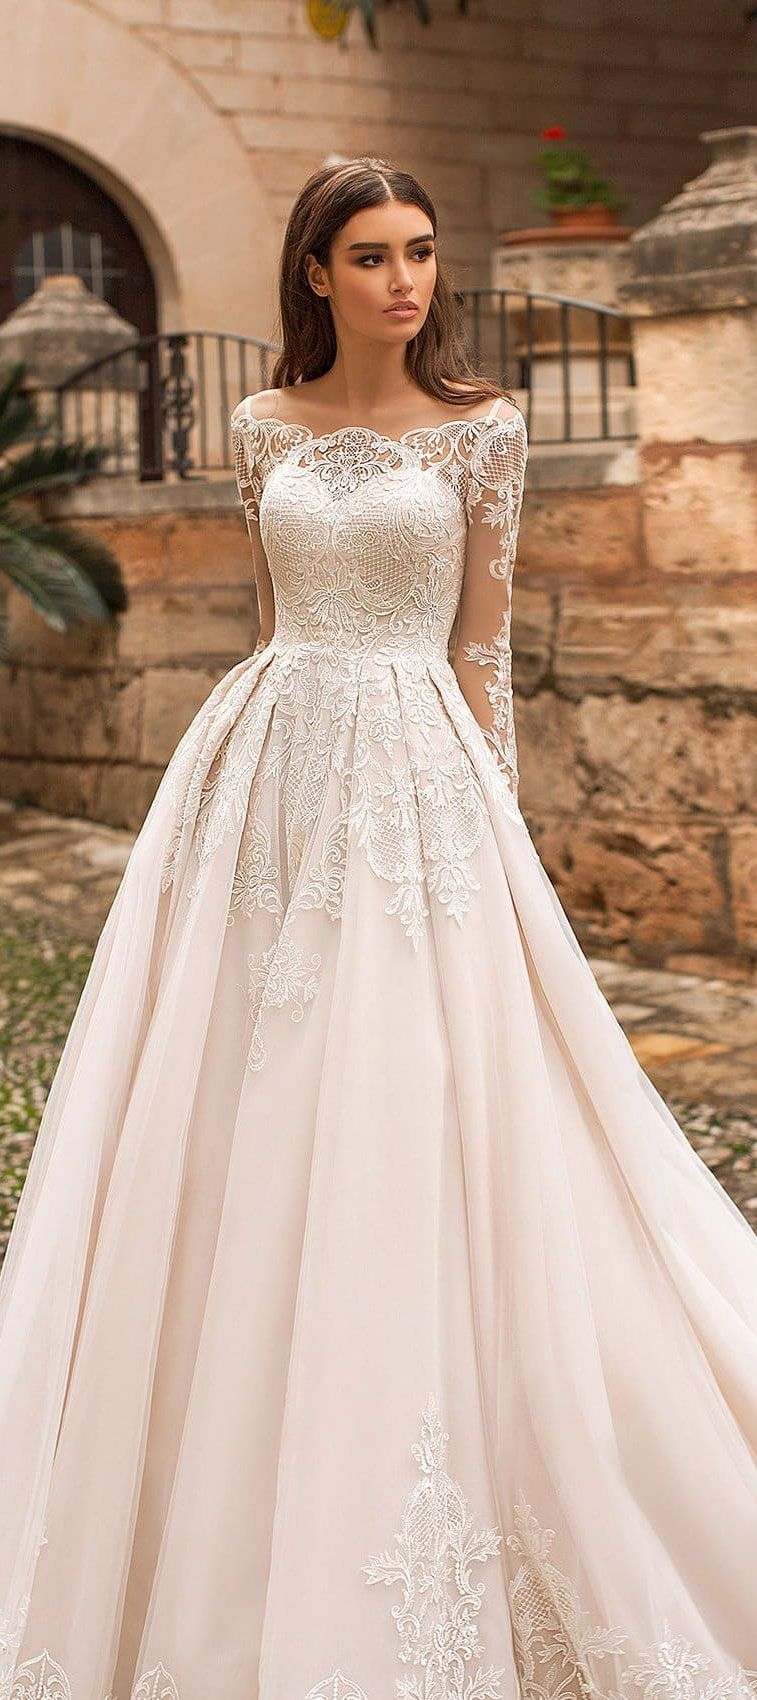 Naviblue Bridal 2018 Wedding Dresses - Dolly Bridal Collection #weddingdress #weddinggown #brideddress #bridalgown #weddingdresses